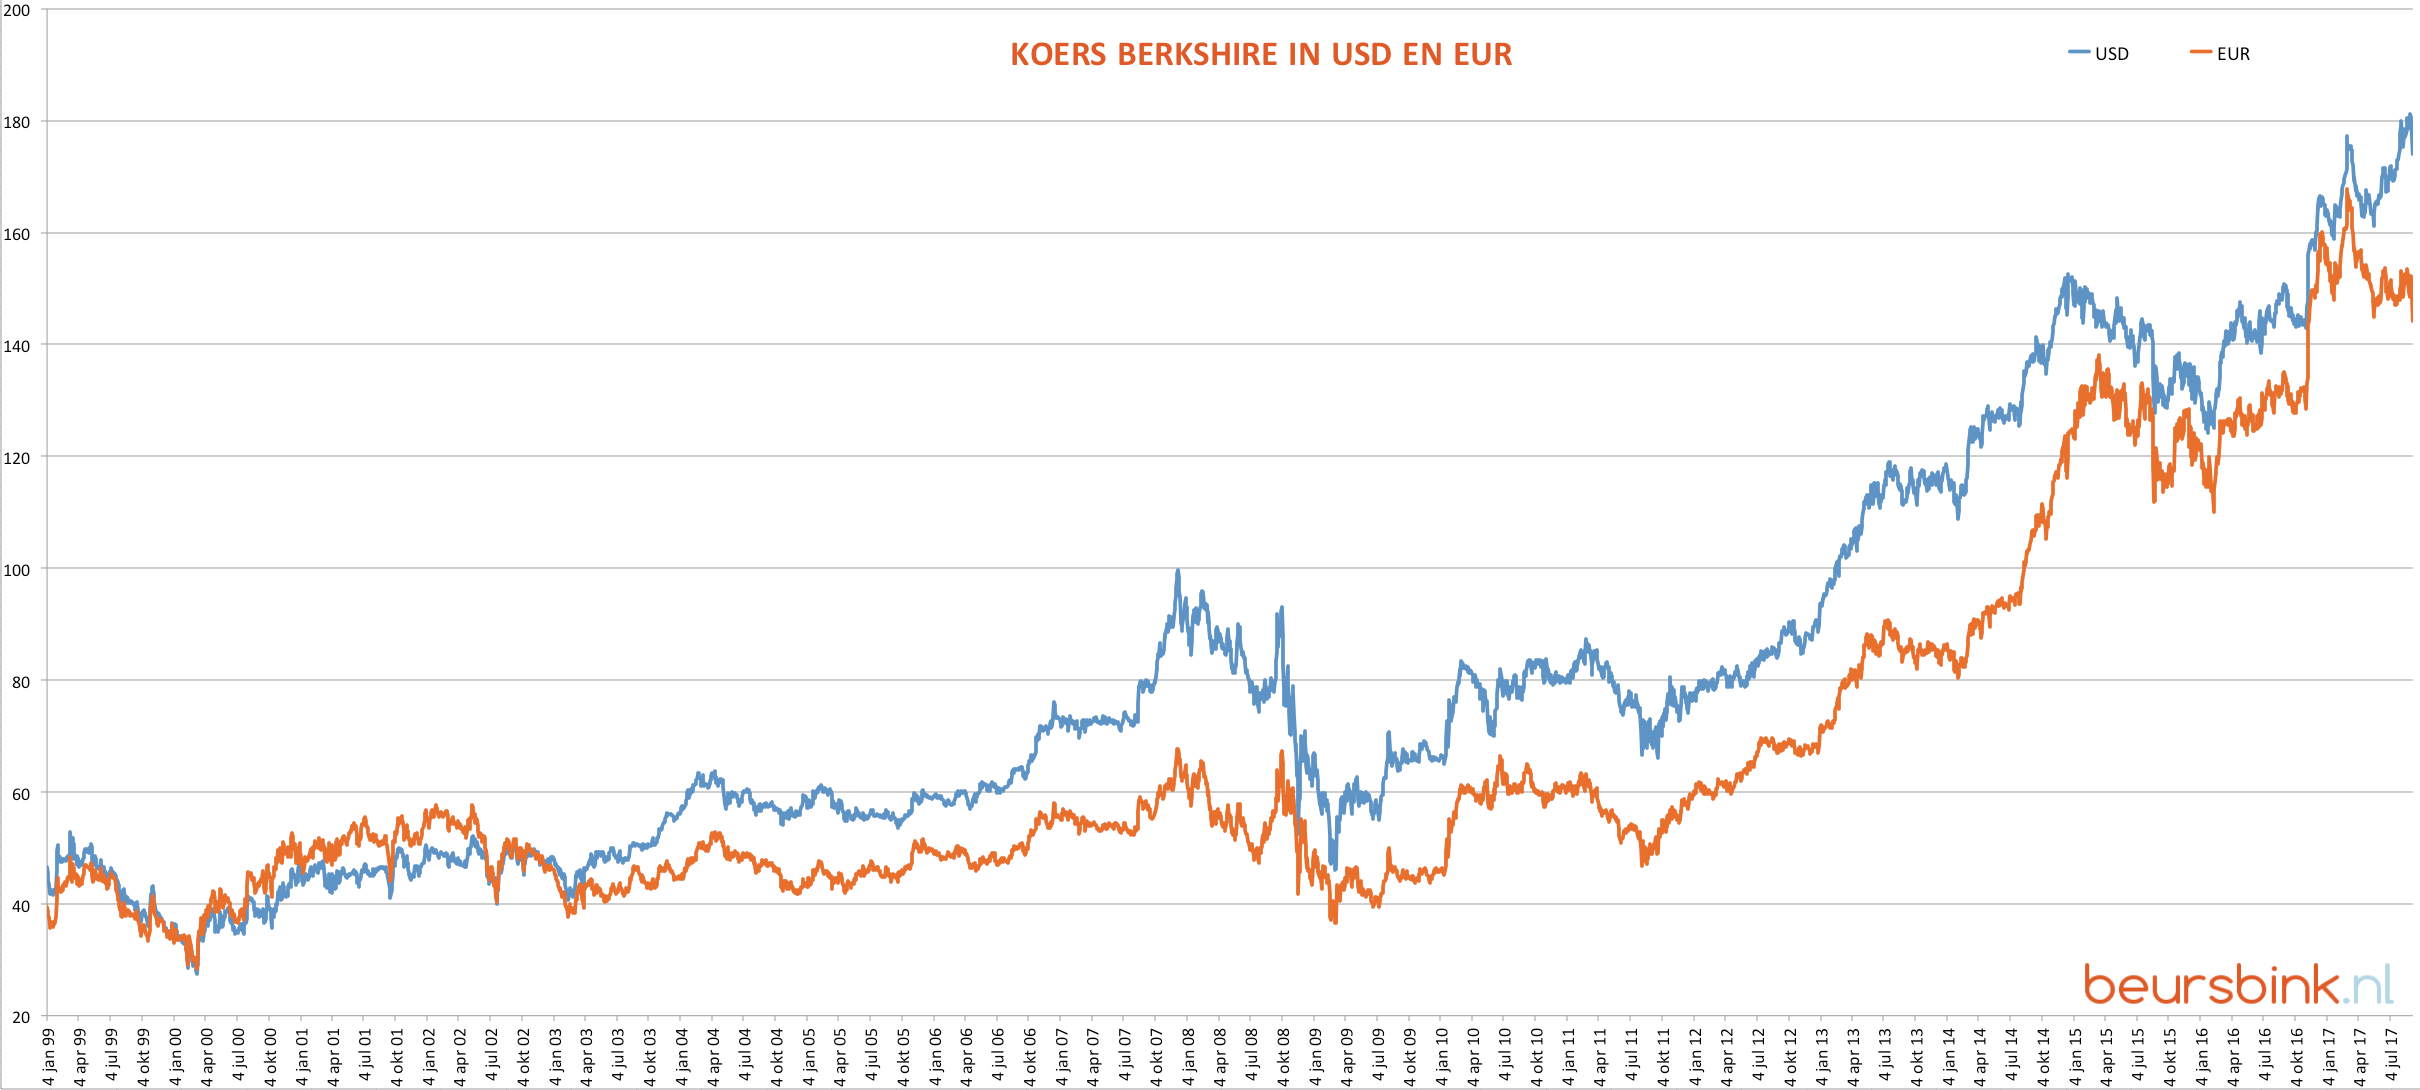 Koers Berkshire in USD en EUR